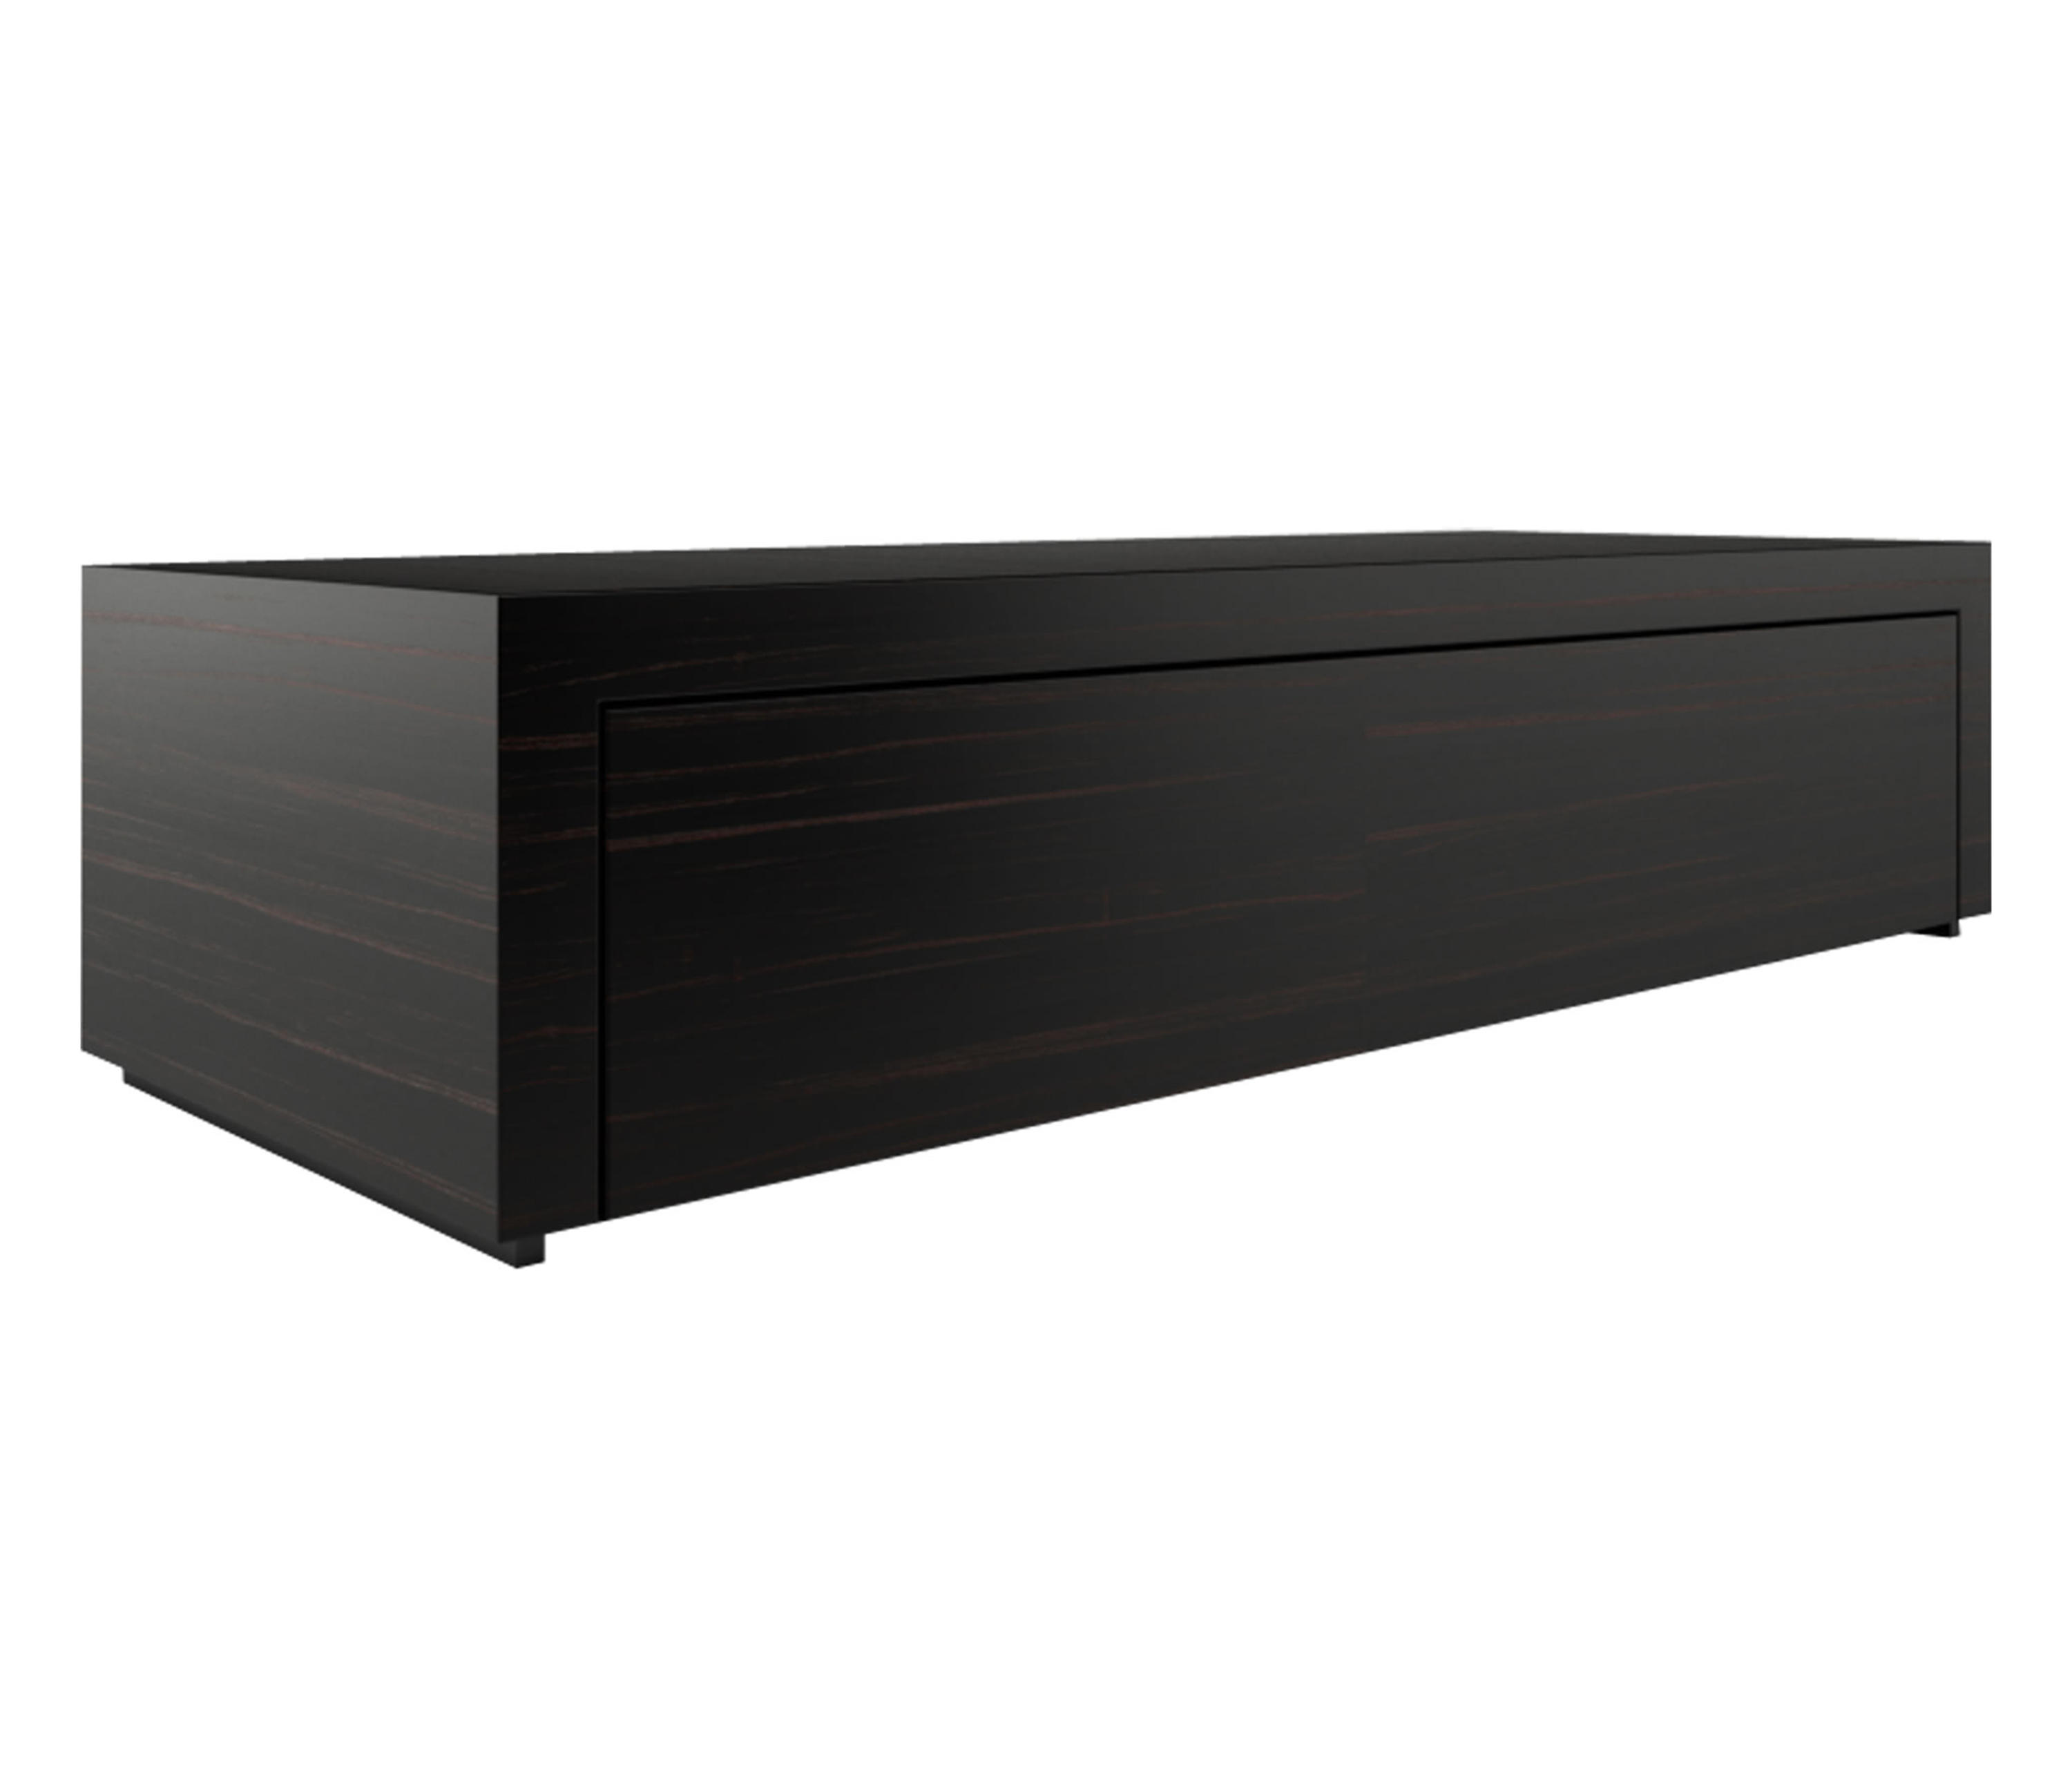 repositio tv hifi sideboard sideboards from rechteck. Black Bedroom Furniture Sets. Home Design Ideas